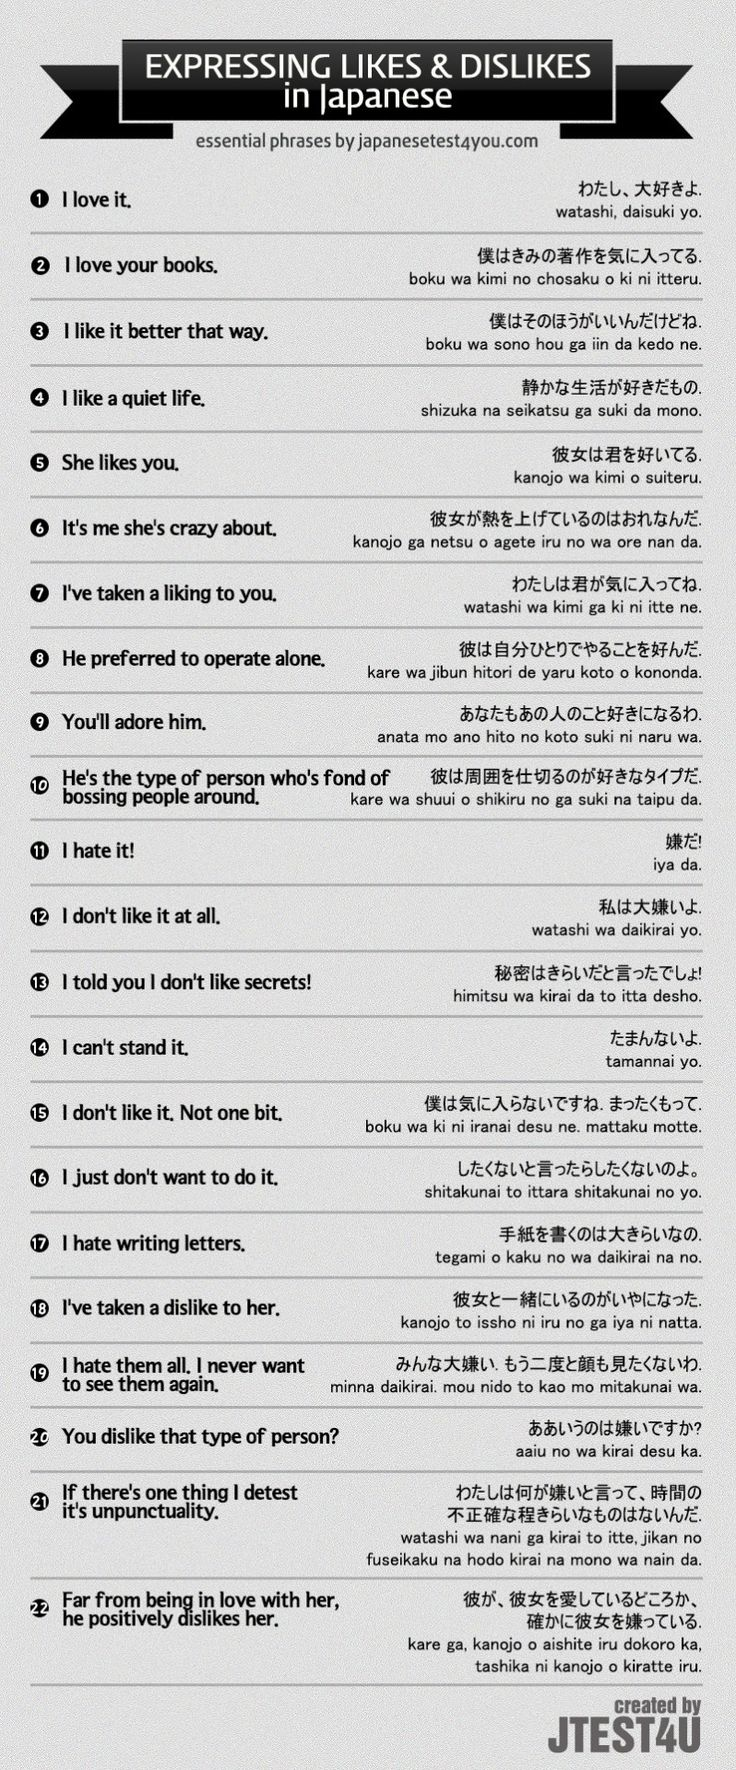 How to express likes or dislikes in Japanese